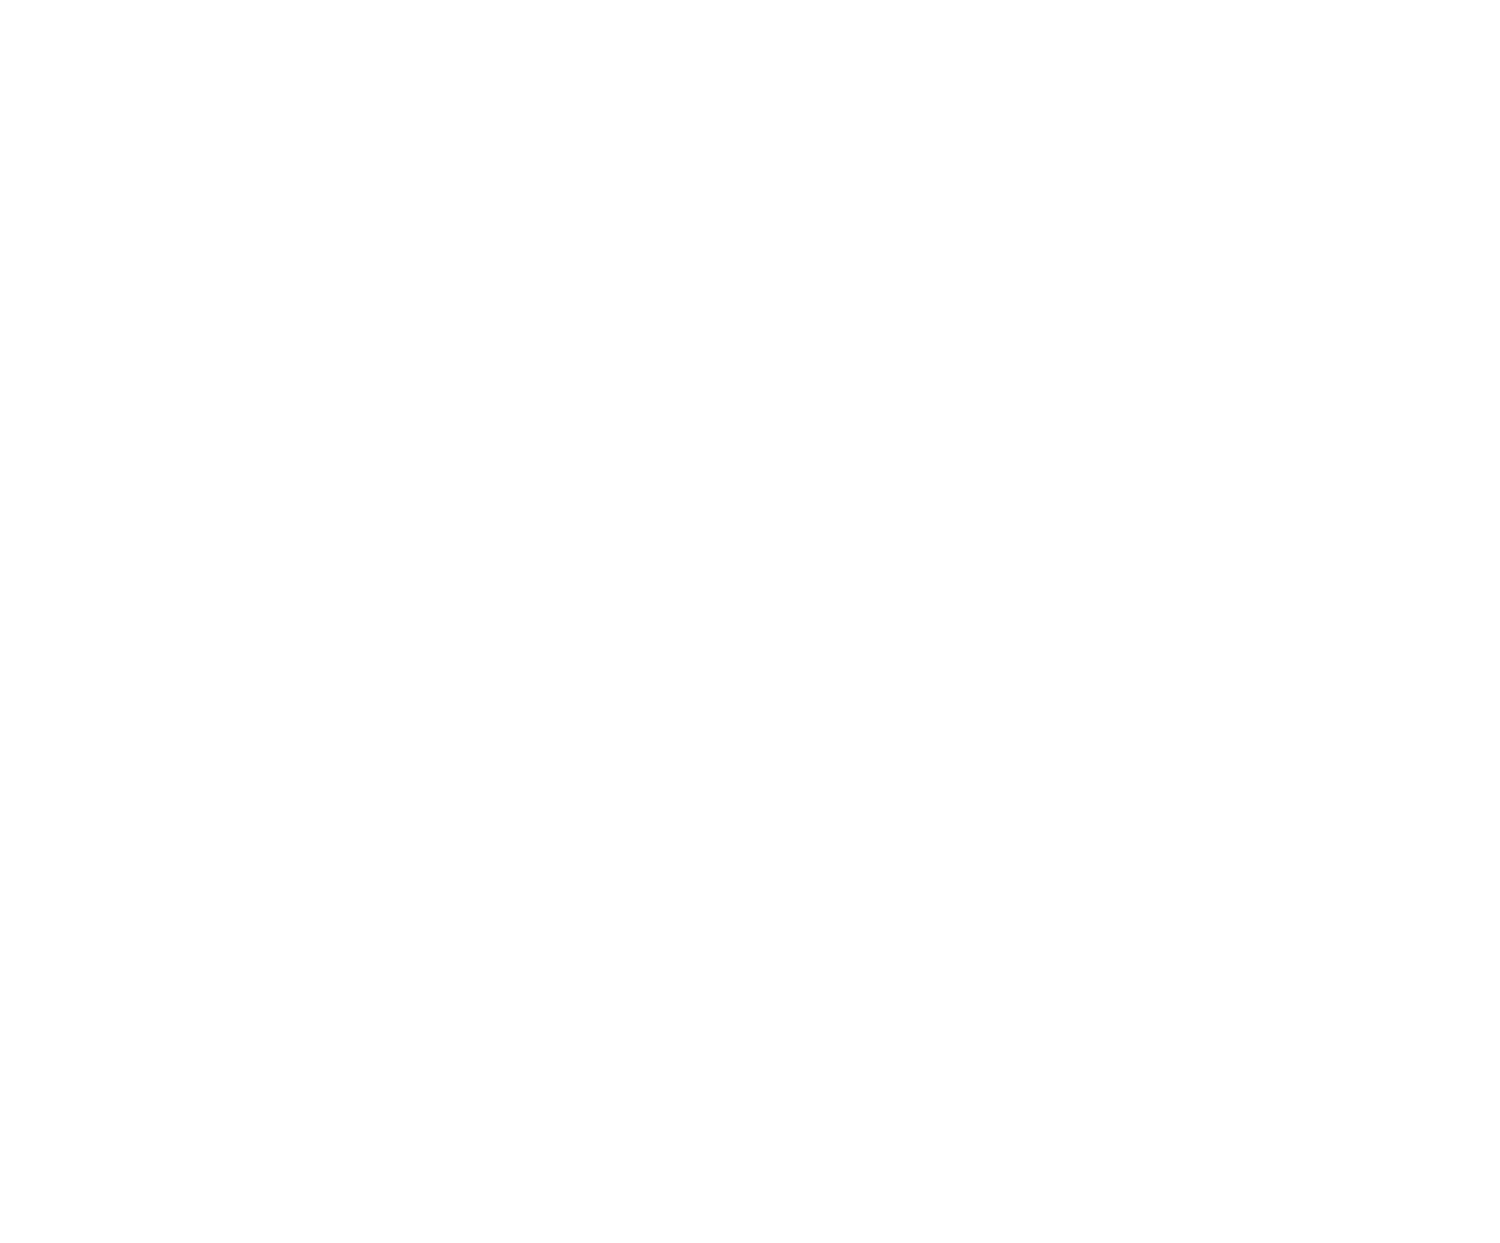 Sports Images Photos